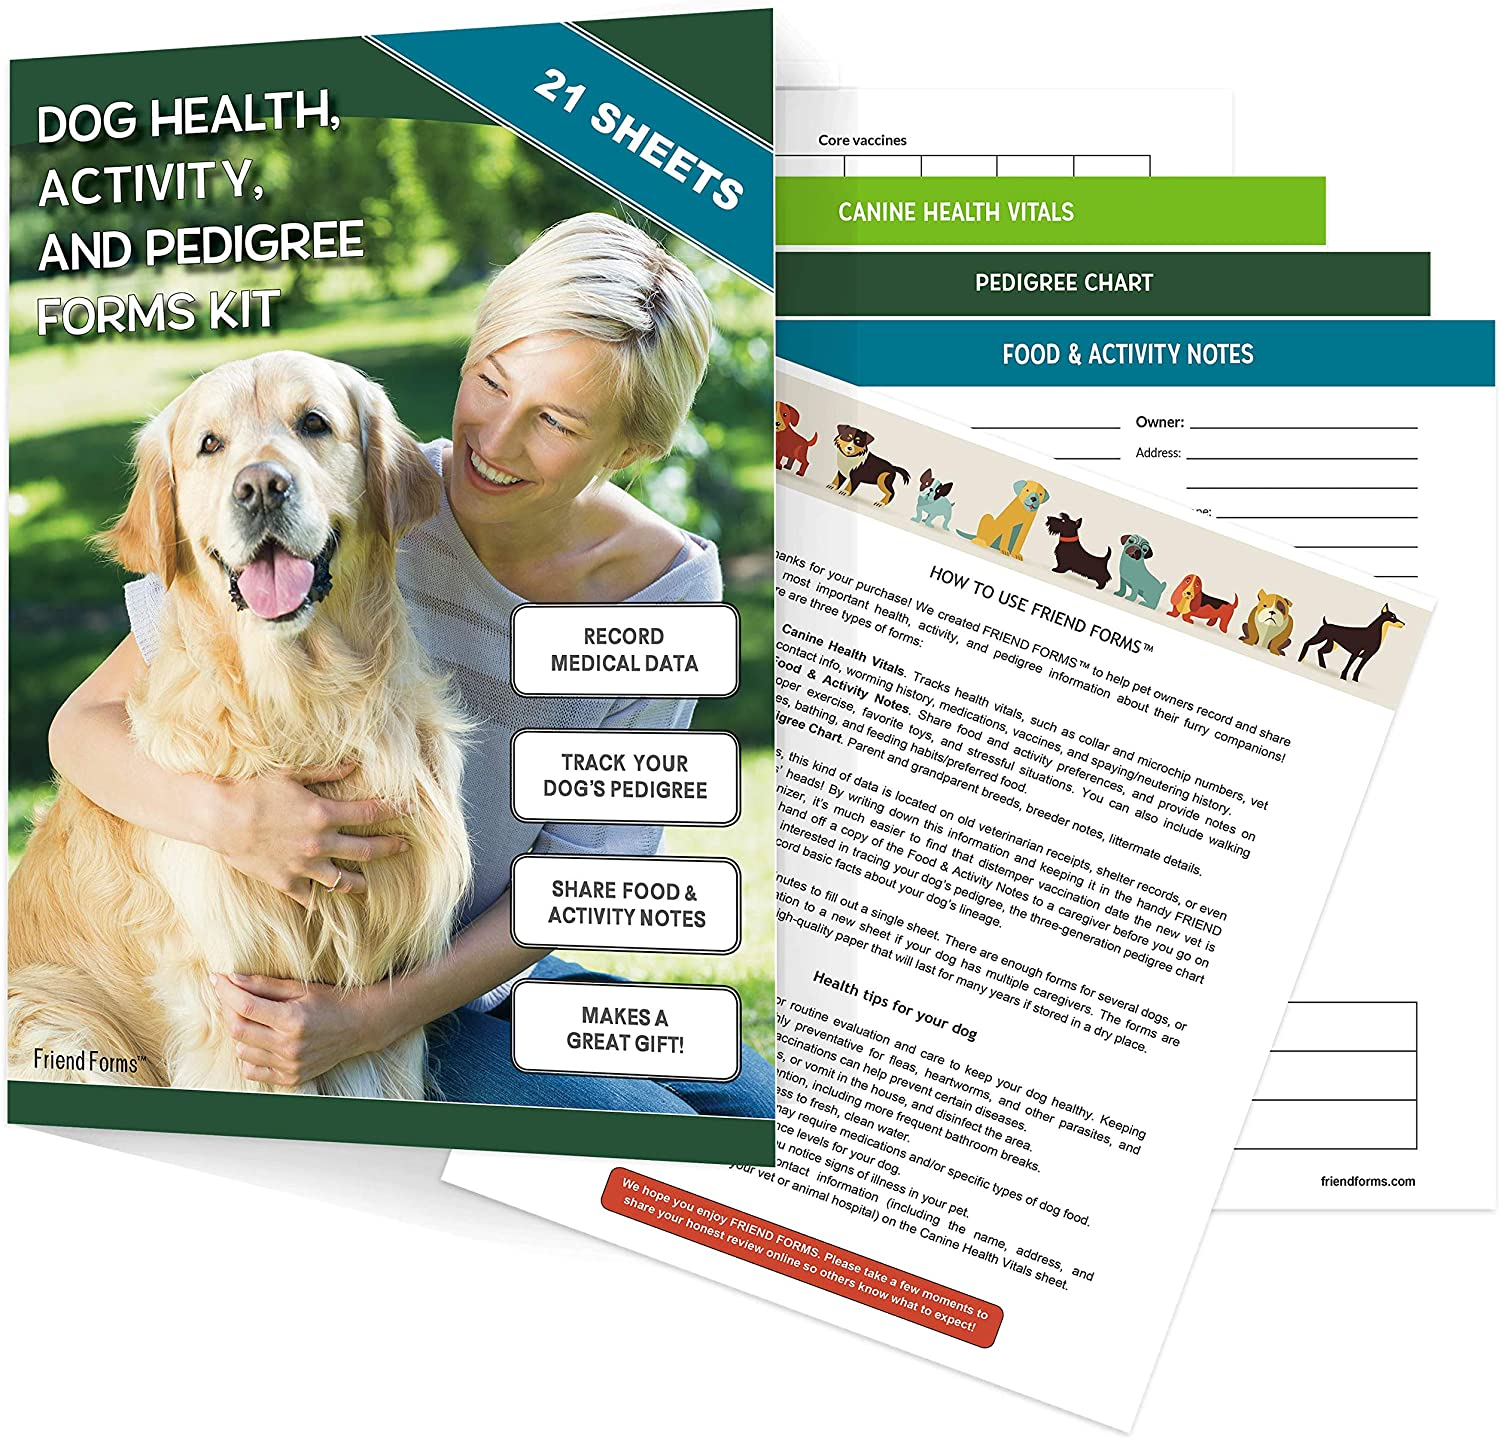 Dog Health, Activity, and Genealogy Forms Kit (21 Sheets) | Track Vet Visits, Favorite Foods, and Breeding History